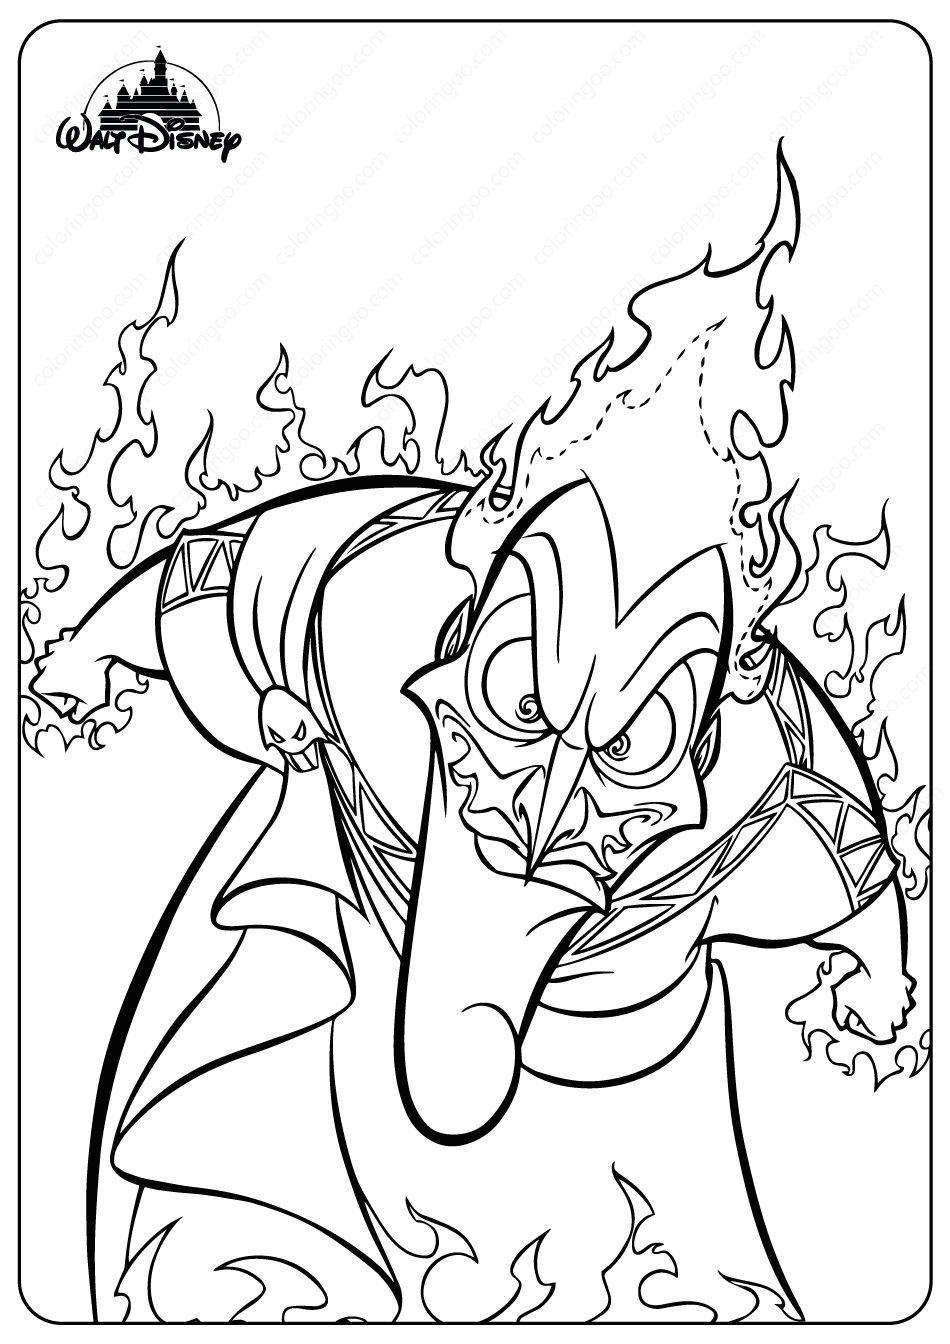 Printable Disney Evil Hades Coloring Pages